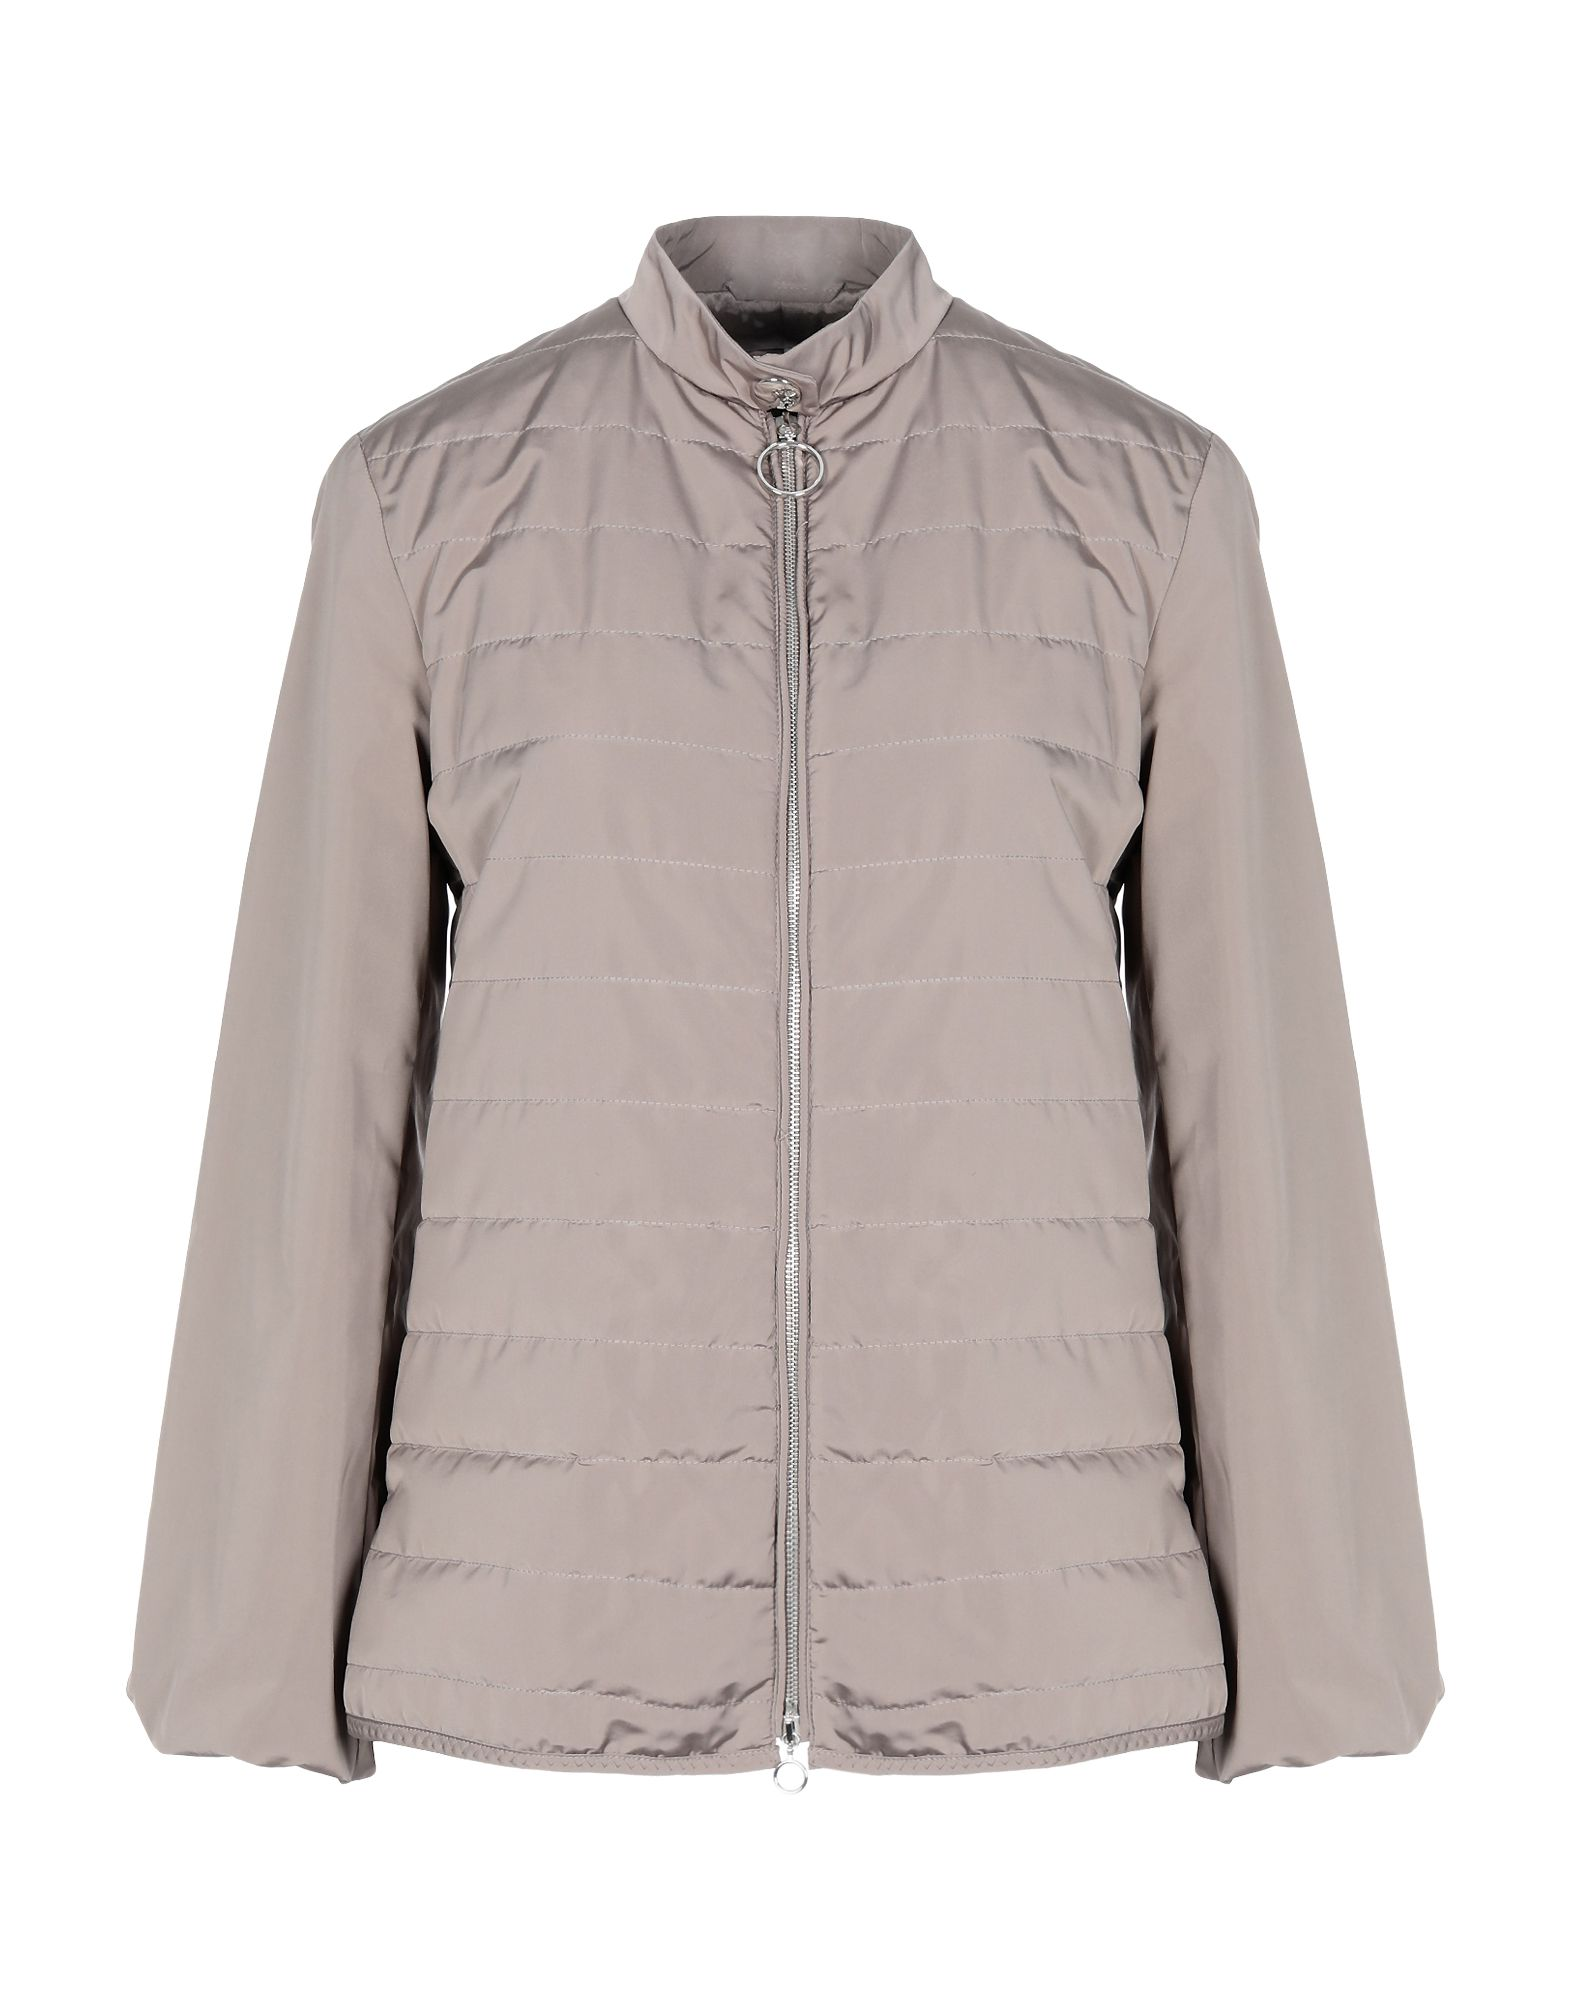 ELEVENTY Synthetic Down Jackets. techno fabric, no appliqués, basic solid color, zip, single-breasted, turtleneck, multipockets, long sleeves, internal padding. 74% Polyester, 26% Acetate